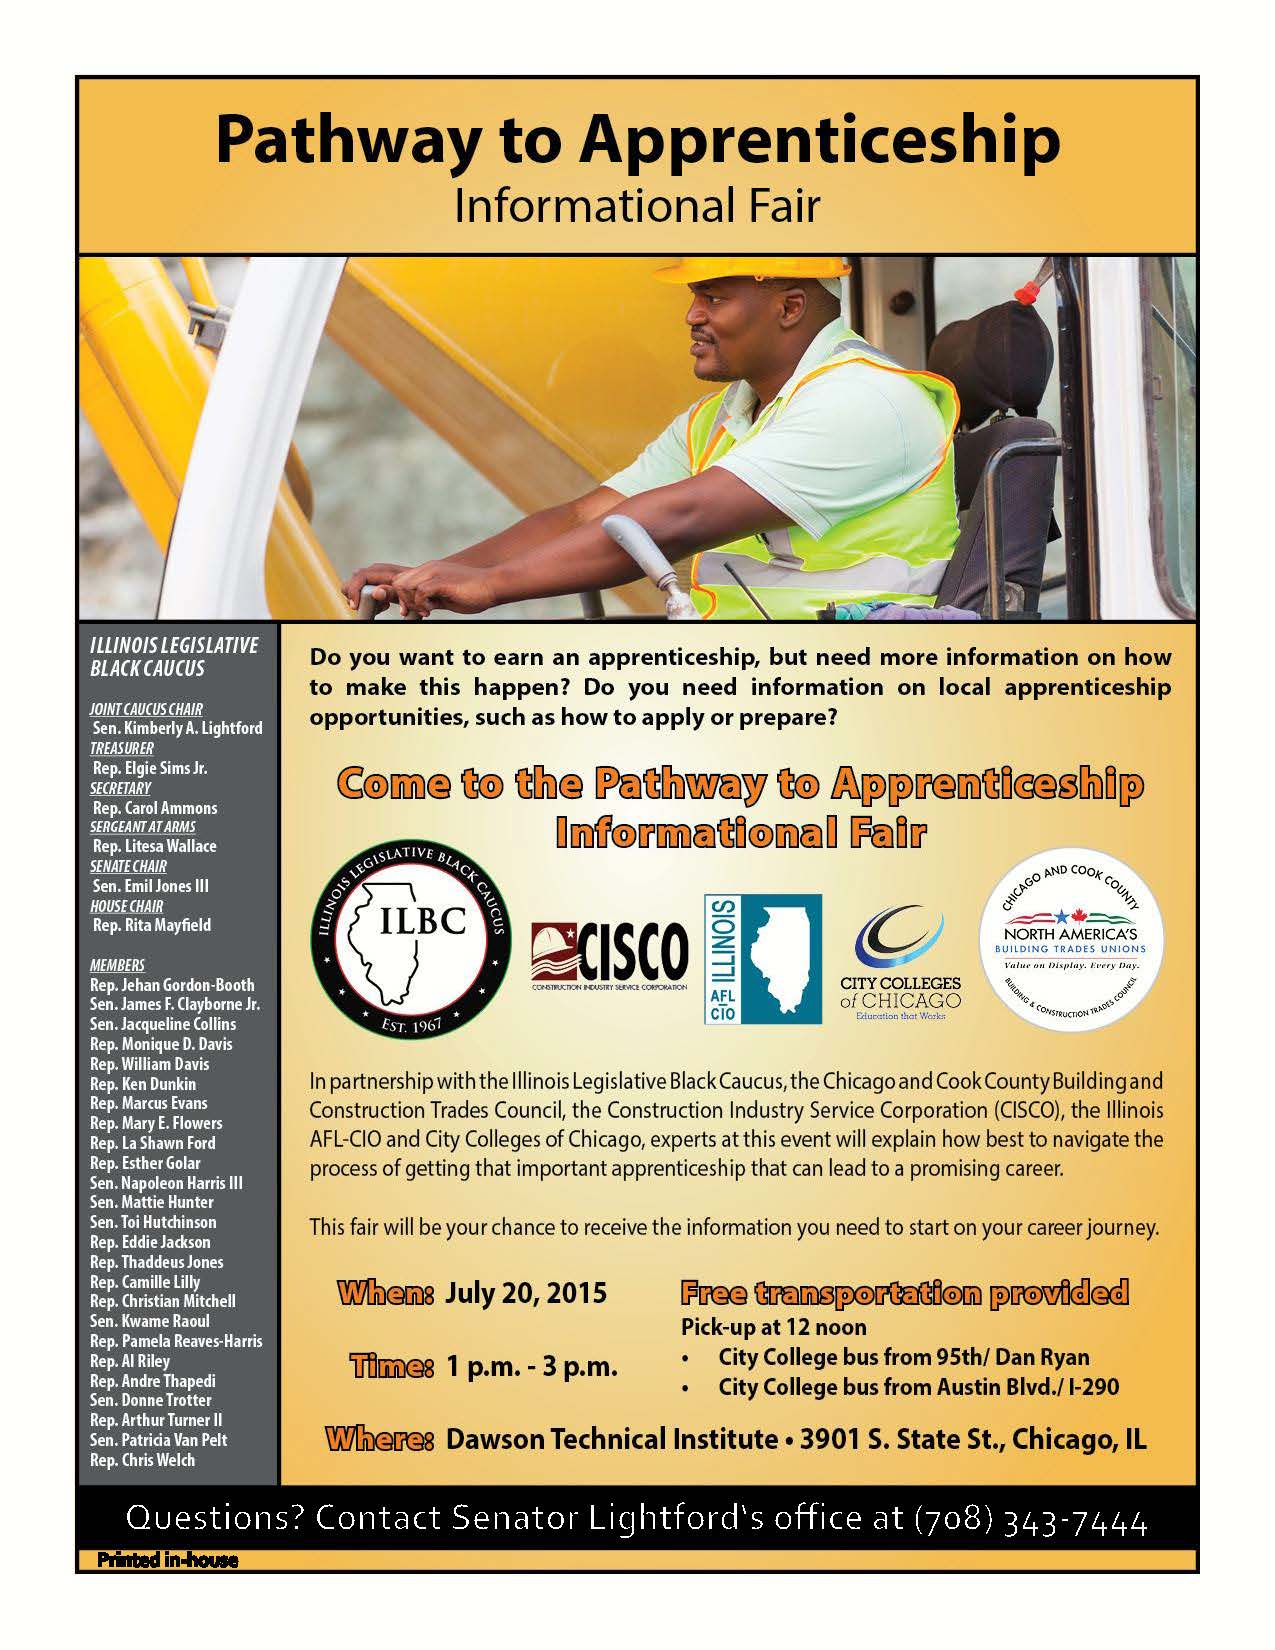 Pathway to Apprenticeship Flyer posted version